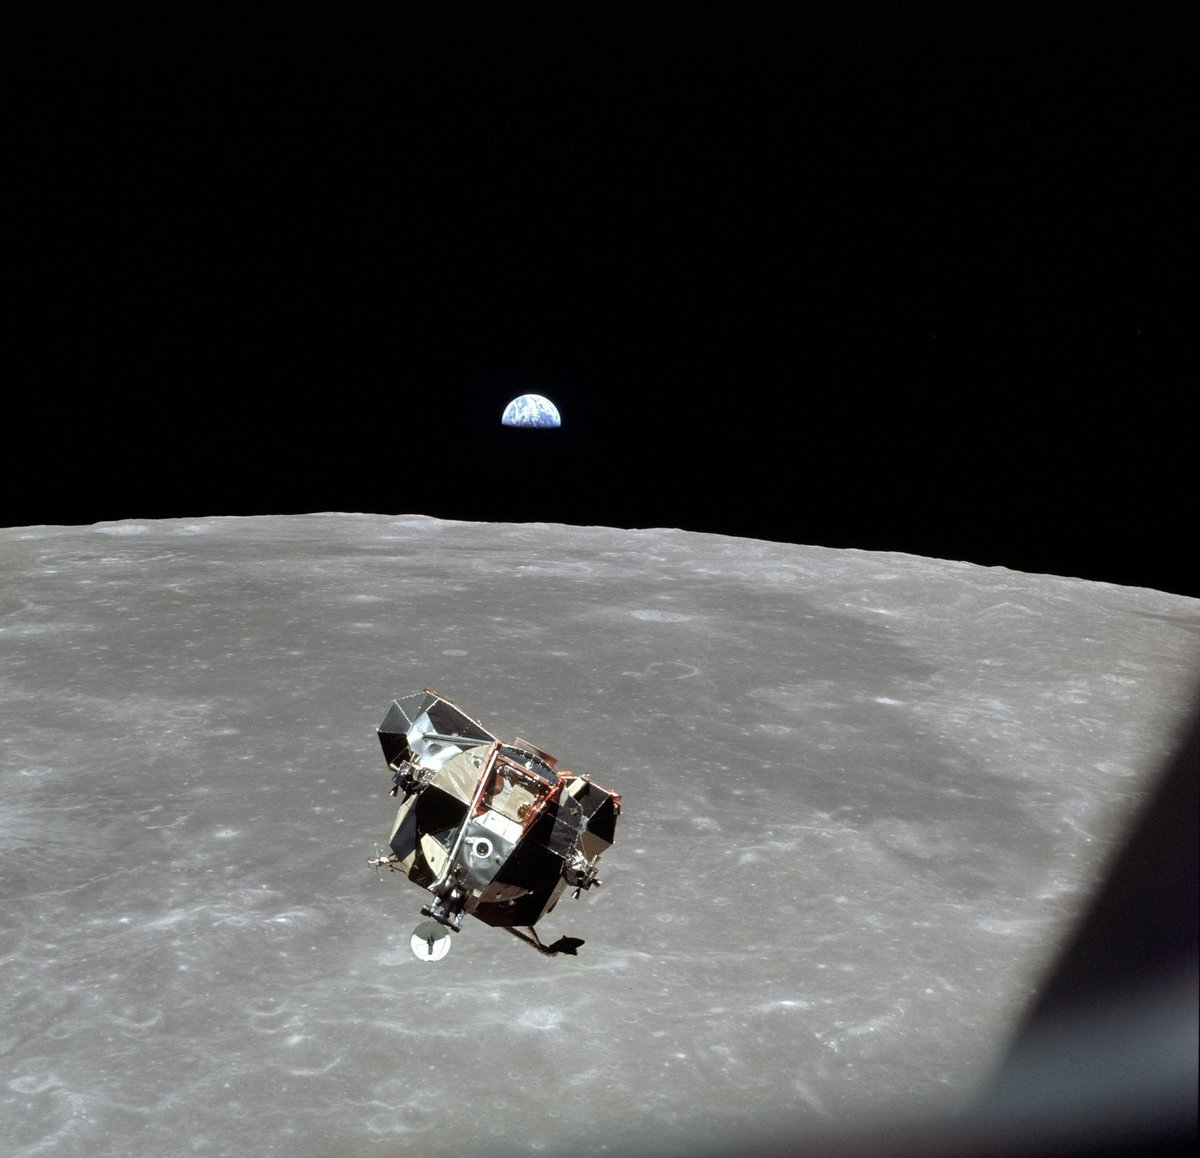 Apollo 11 Astronaut Michael Collins on the Past and Future of Space Exploration https://t.co/48t5BVVtTD https://t.co/MZKH0GvALr  Interview commemorating the 50th anniversary of the lunar landing of July 1969. Collins was 90 years old.  Credit @jaywbennett @SmithsonianMag  #moon